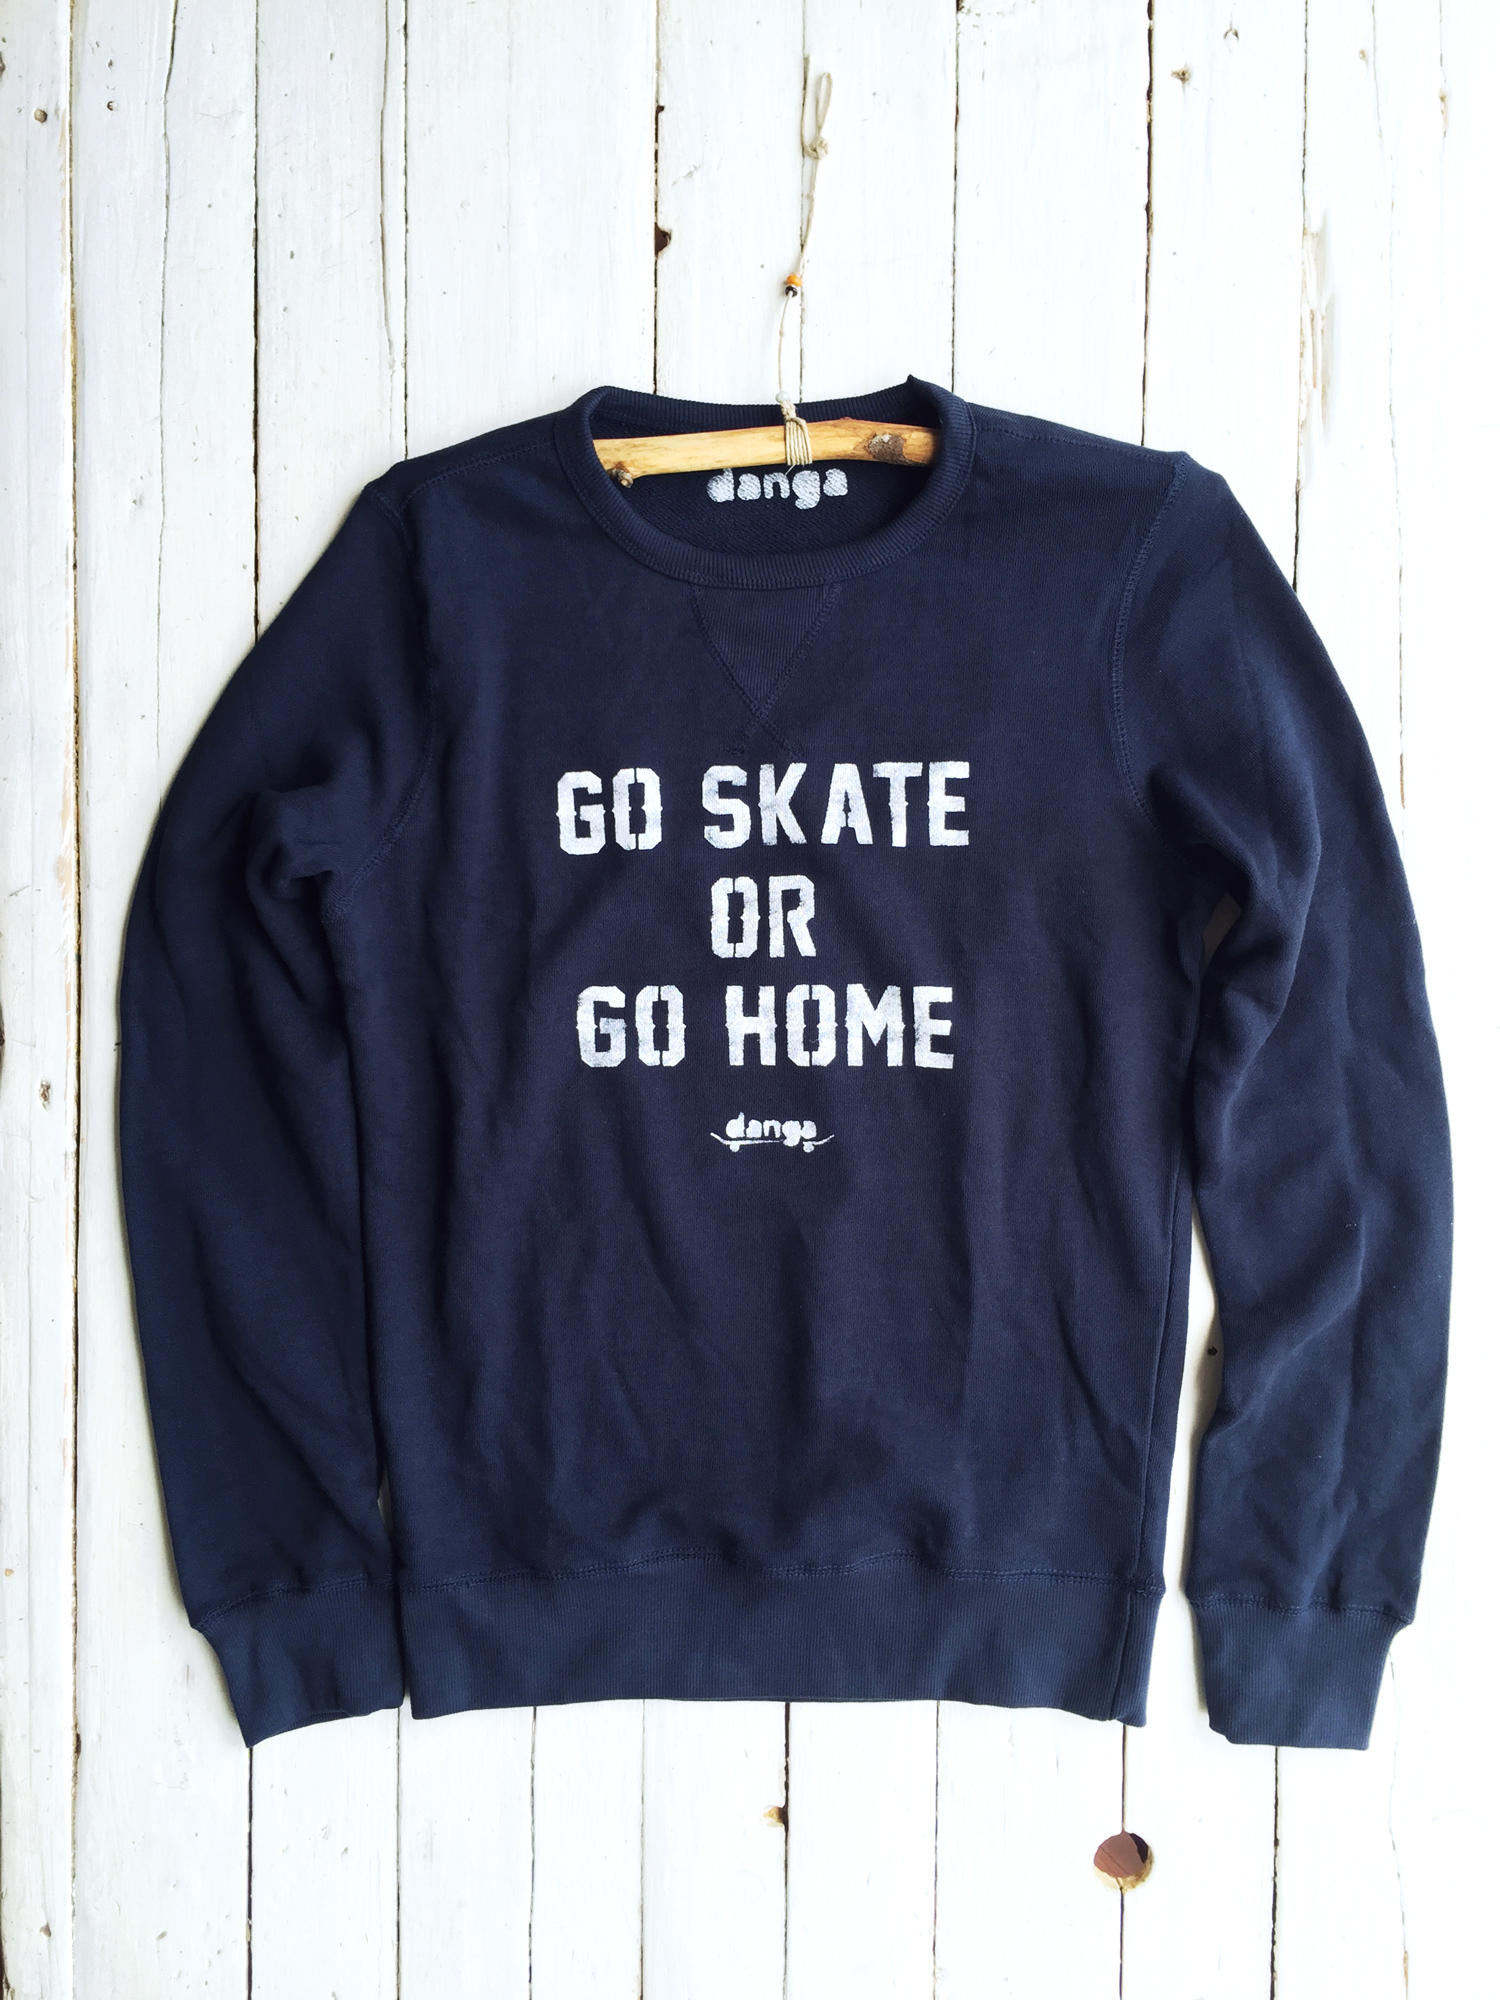 GO SKATE OR GO HOME